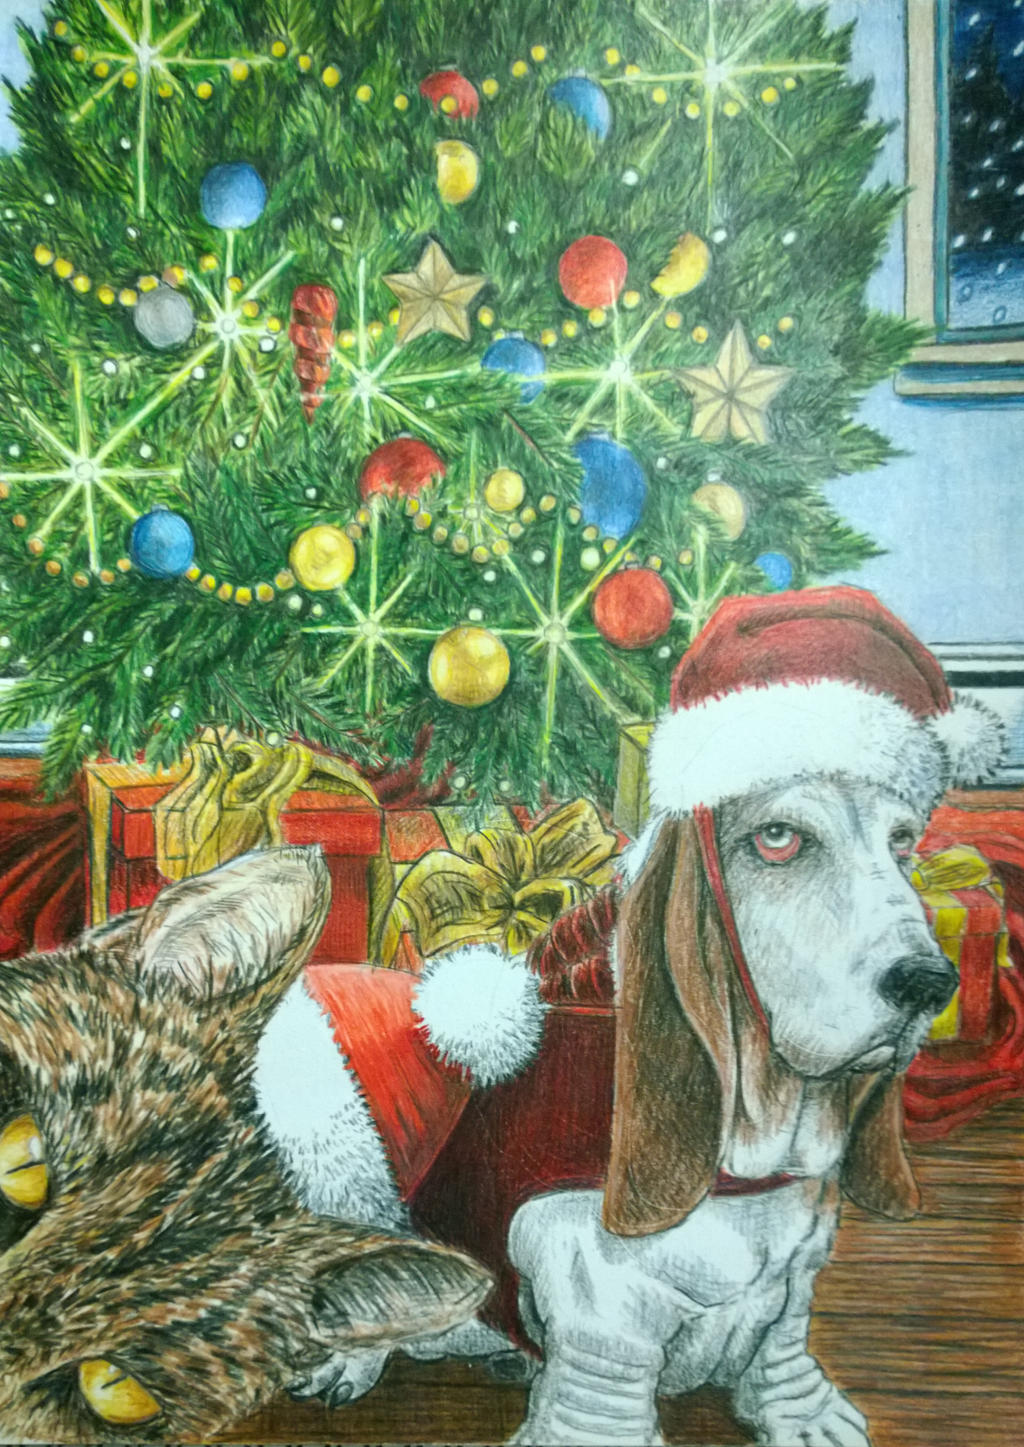 christmas_with_elsie_and_riley_by_markdaniel-d6xix57.jpg